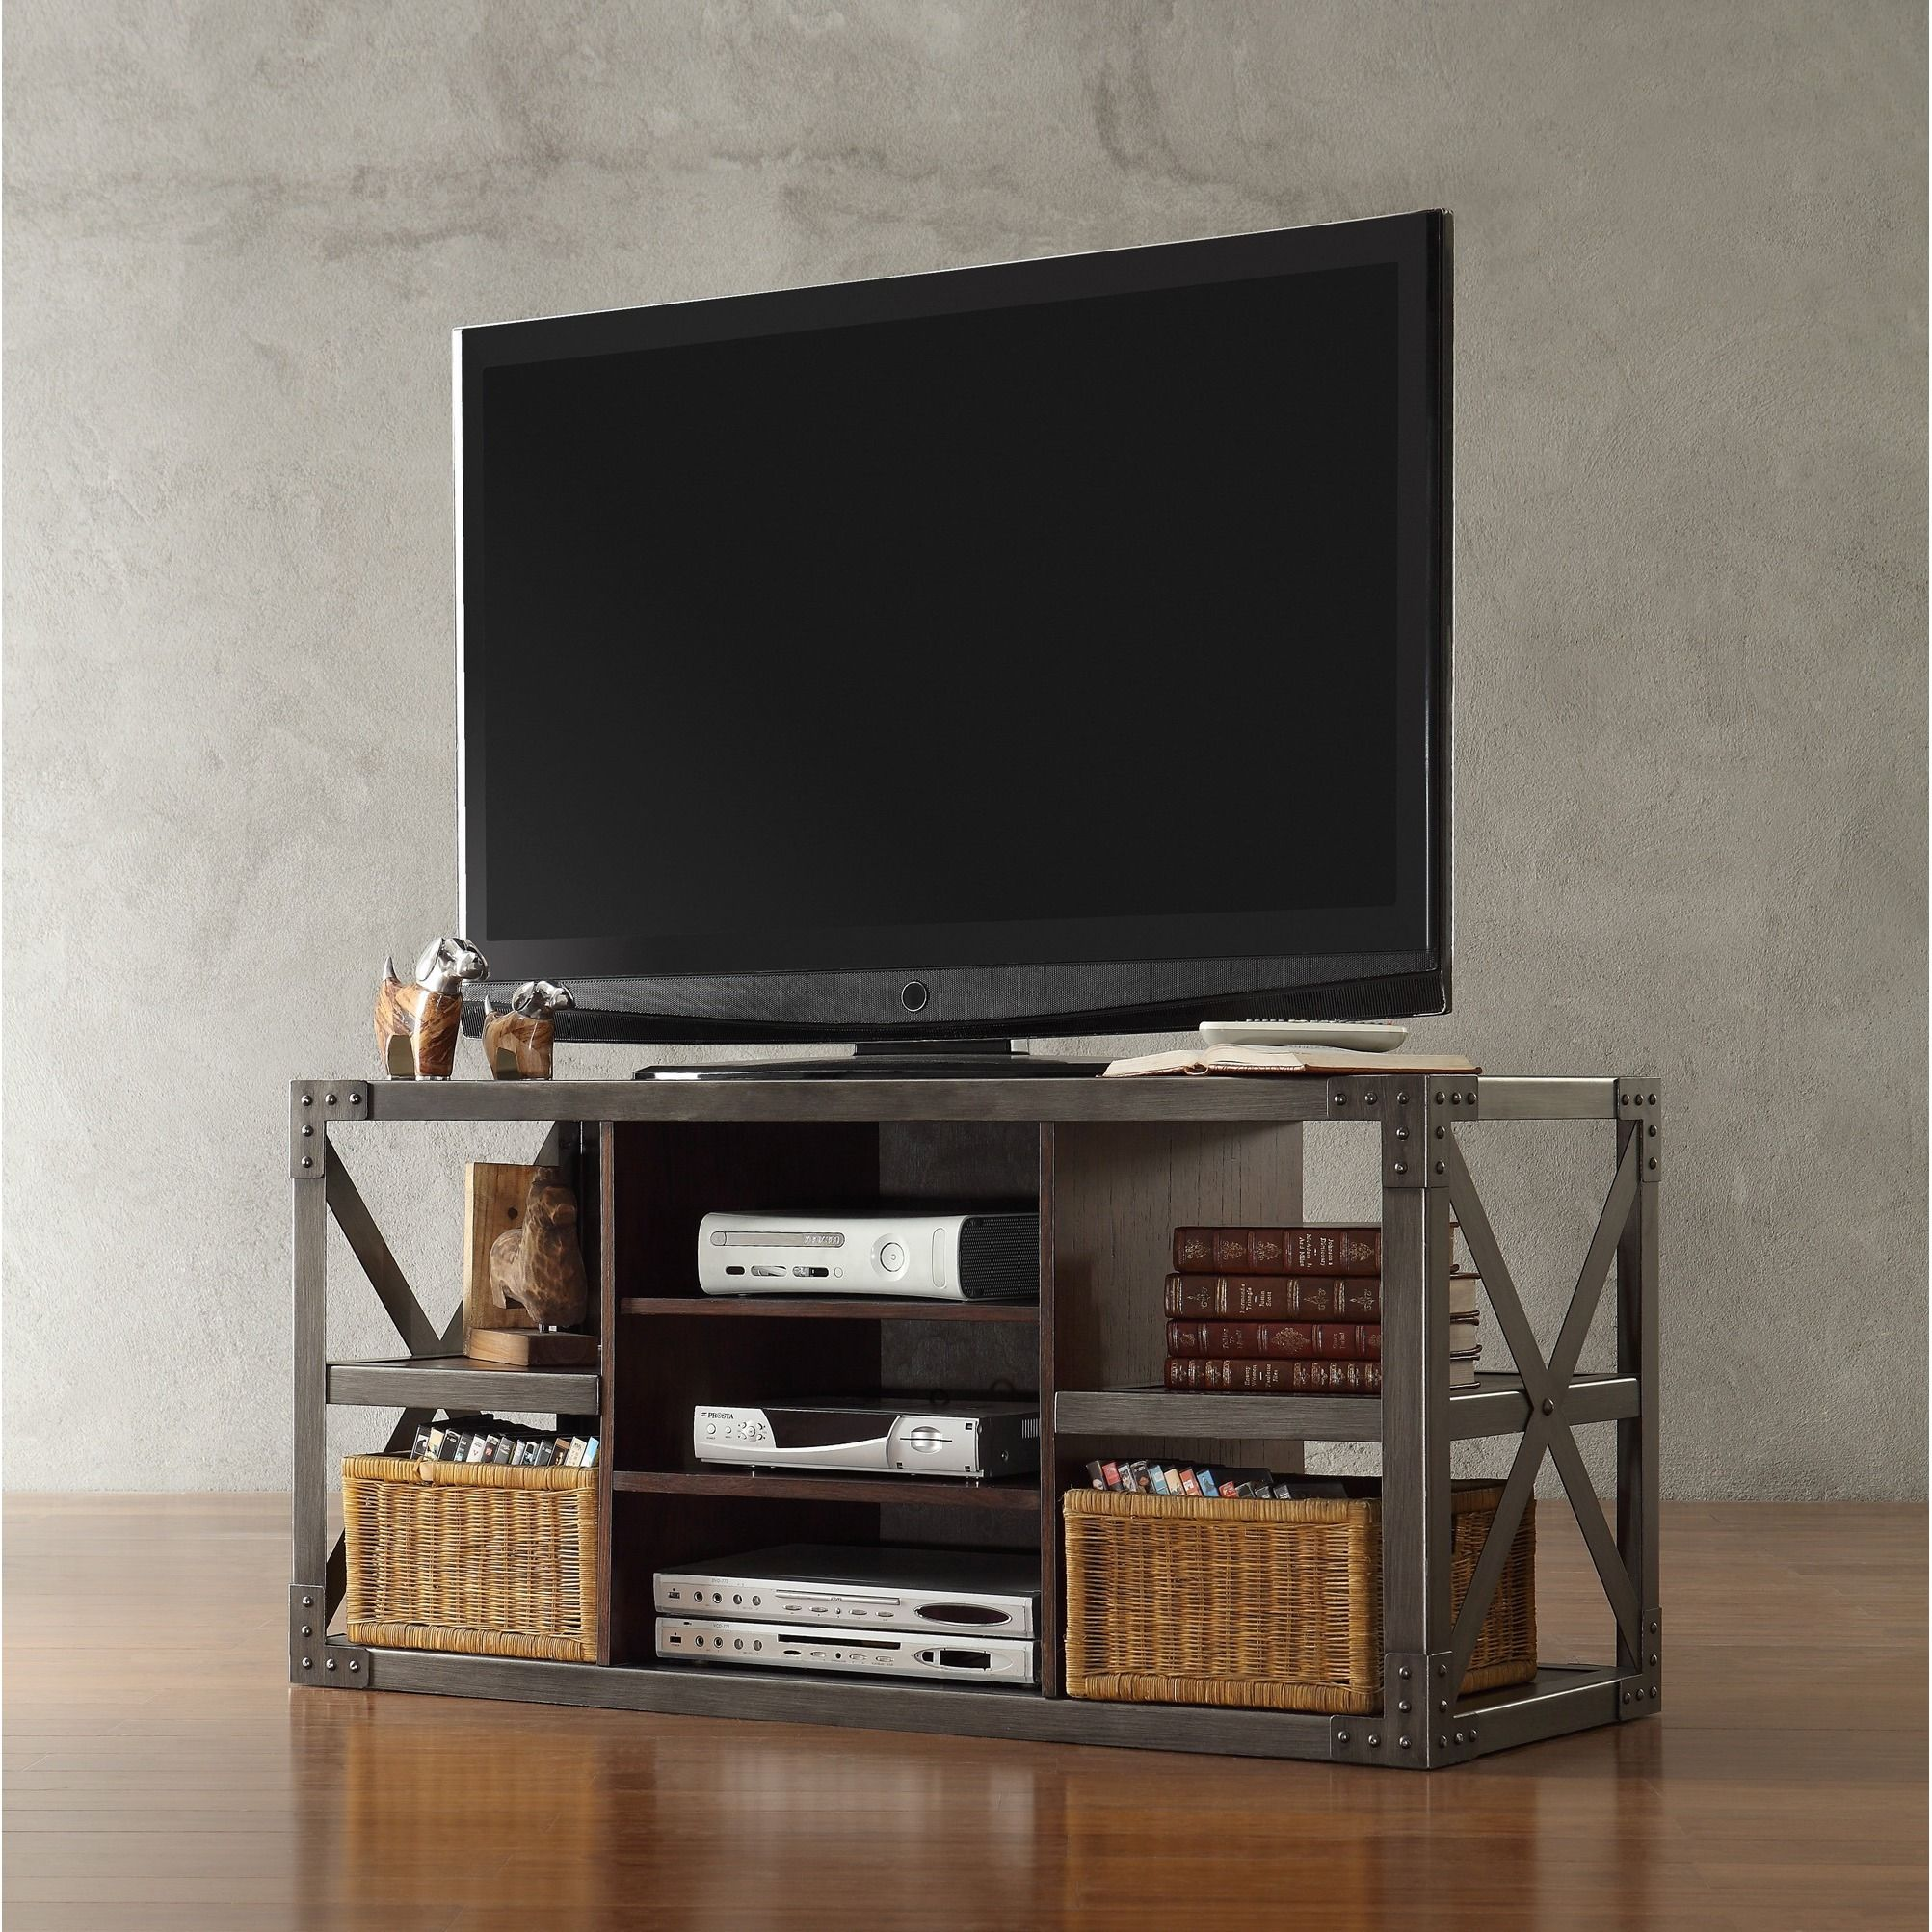 Innovative with an industrial feel, this vintage inspired media console  refreshes traditional style with mixed steel and wood finishes. The  minimalist yet ...